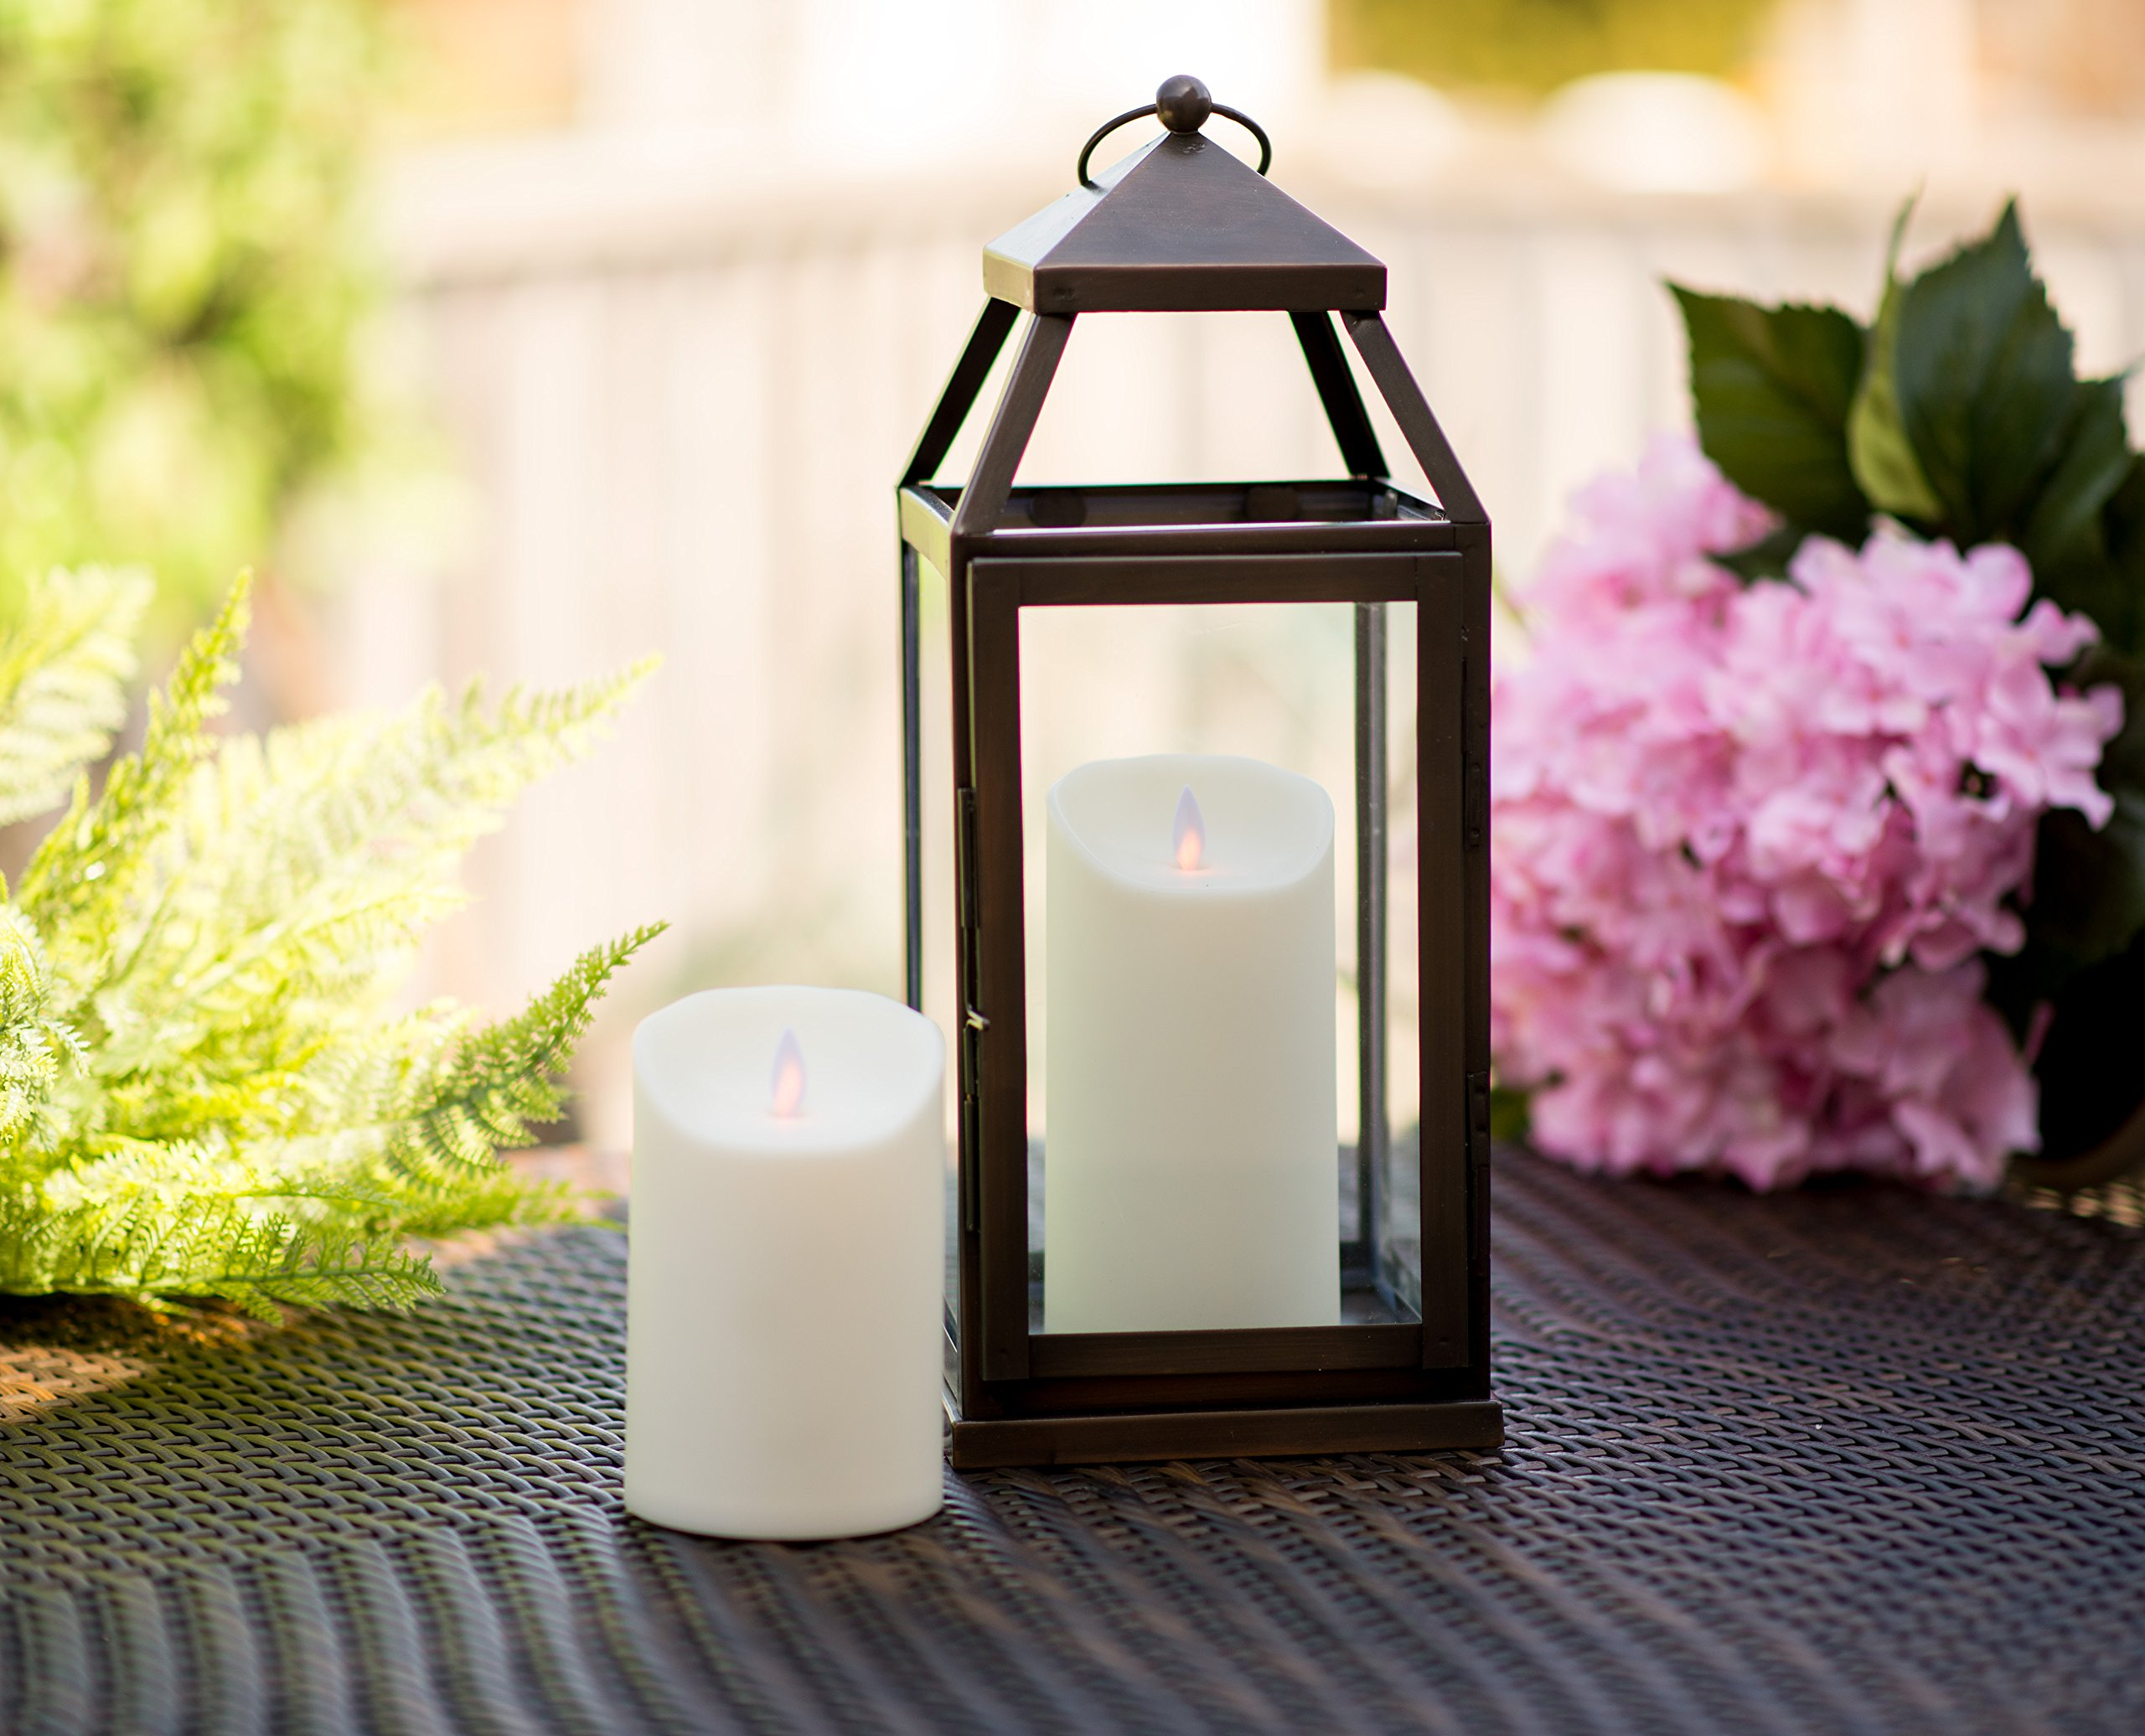 Mystique Flameless Candle, Ivory 7'' Pillar for Outdoor Use, Remote Control Ready, Plastic Candle With Realistic Flickering Wick, Battery Operated, By Boston Warehouse